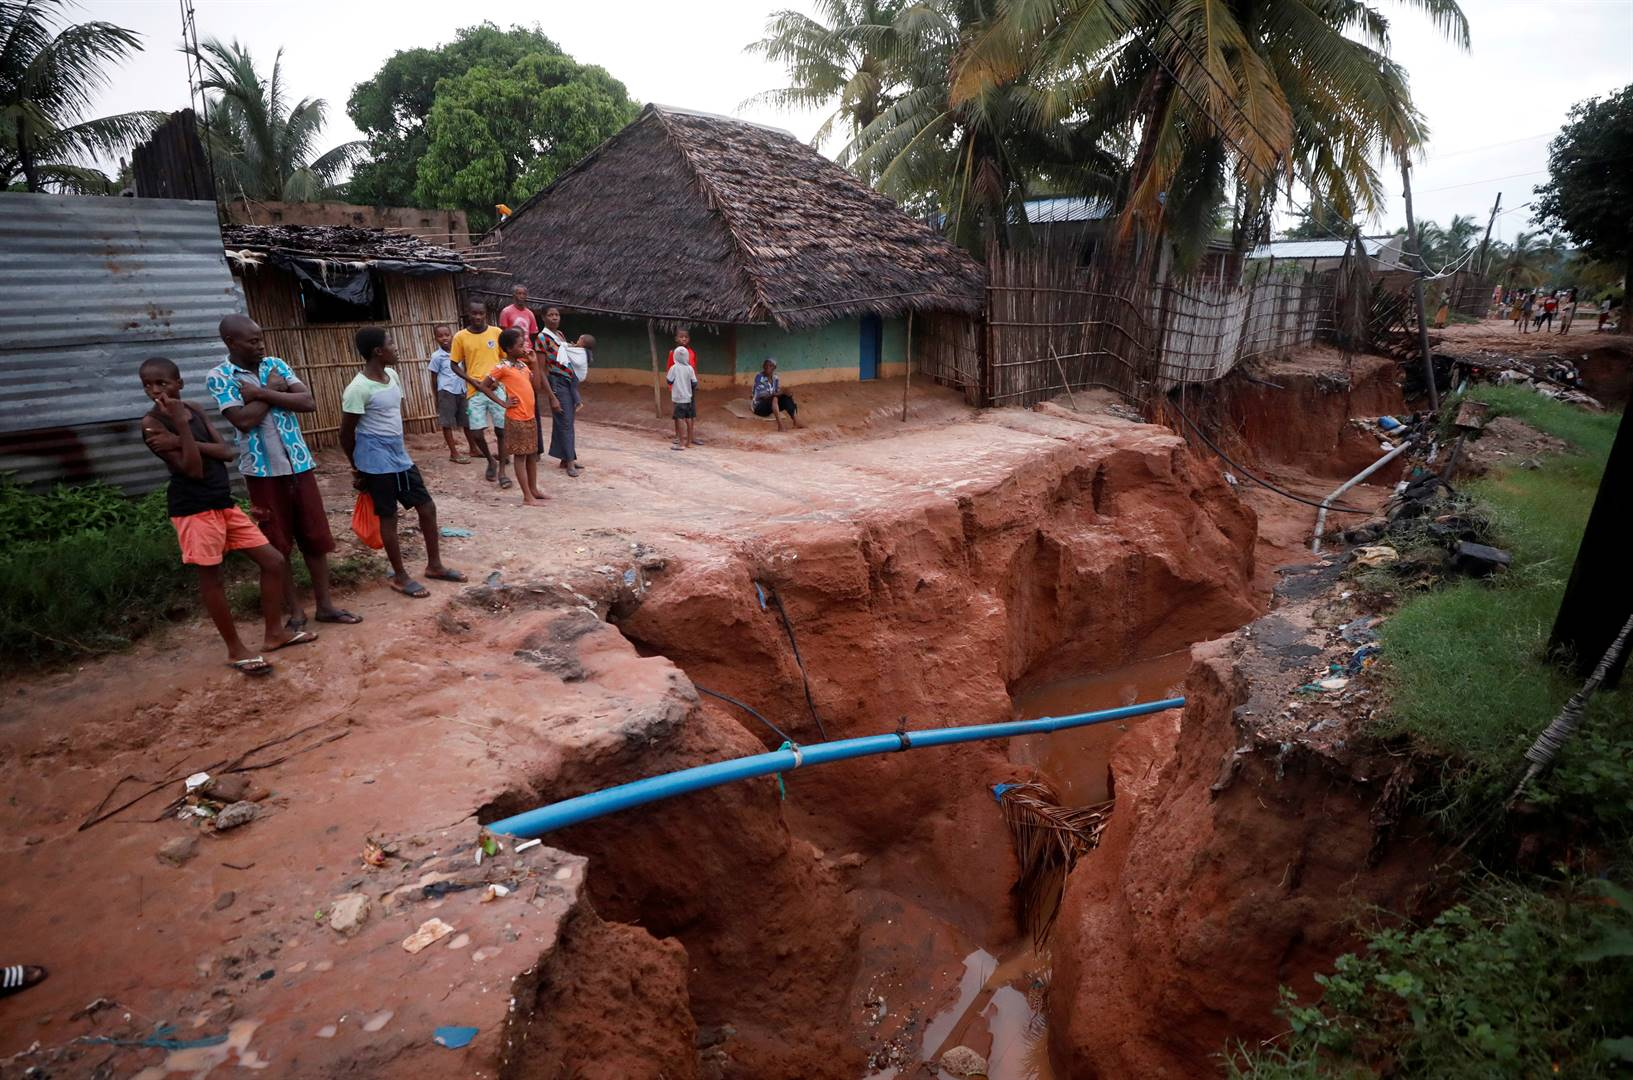 Residents look at a road that collapsed in the aftermath of Cyclone Kenneth, at Wimbe village in Pemba, Mozambique, on Monday (April 29, 2019). Picture: Mike Hutchings/Reuters